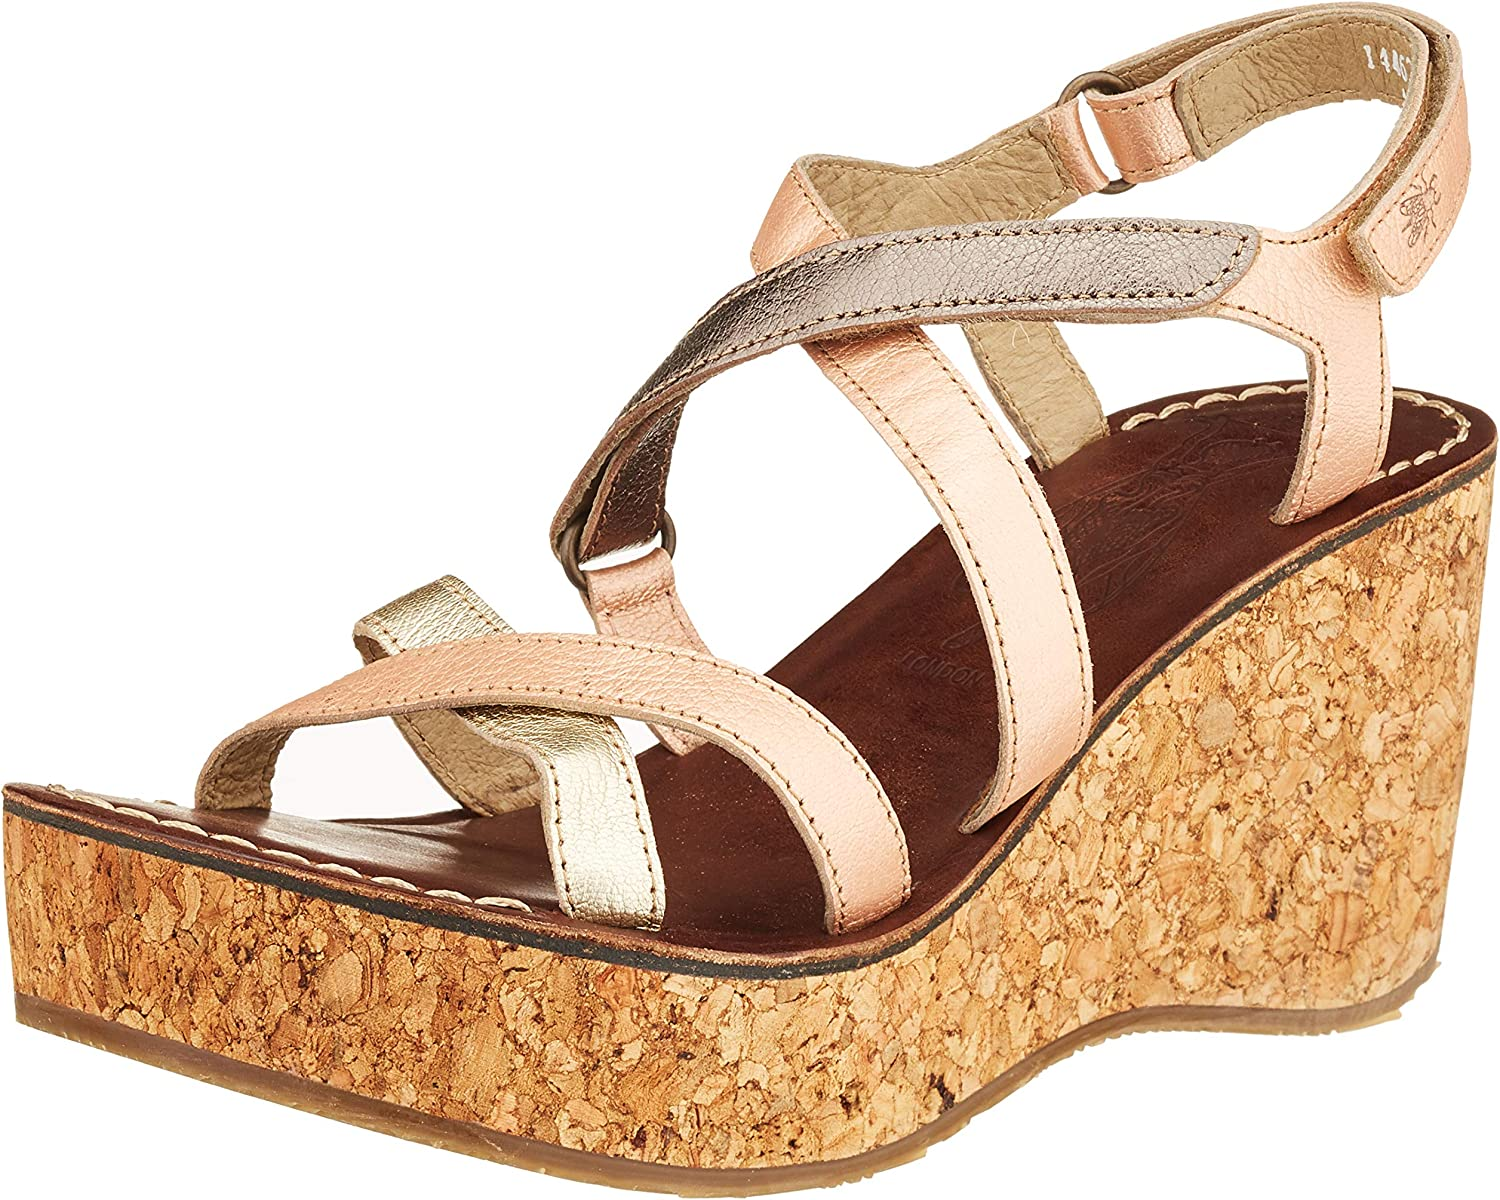 Fly London Directly managed store Women's Heels Max 79% OFF Sandals Open Toe